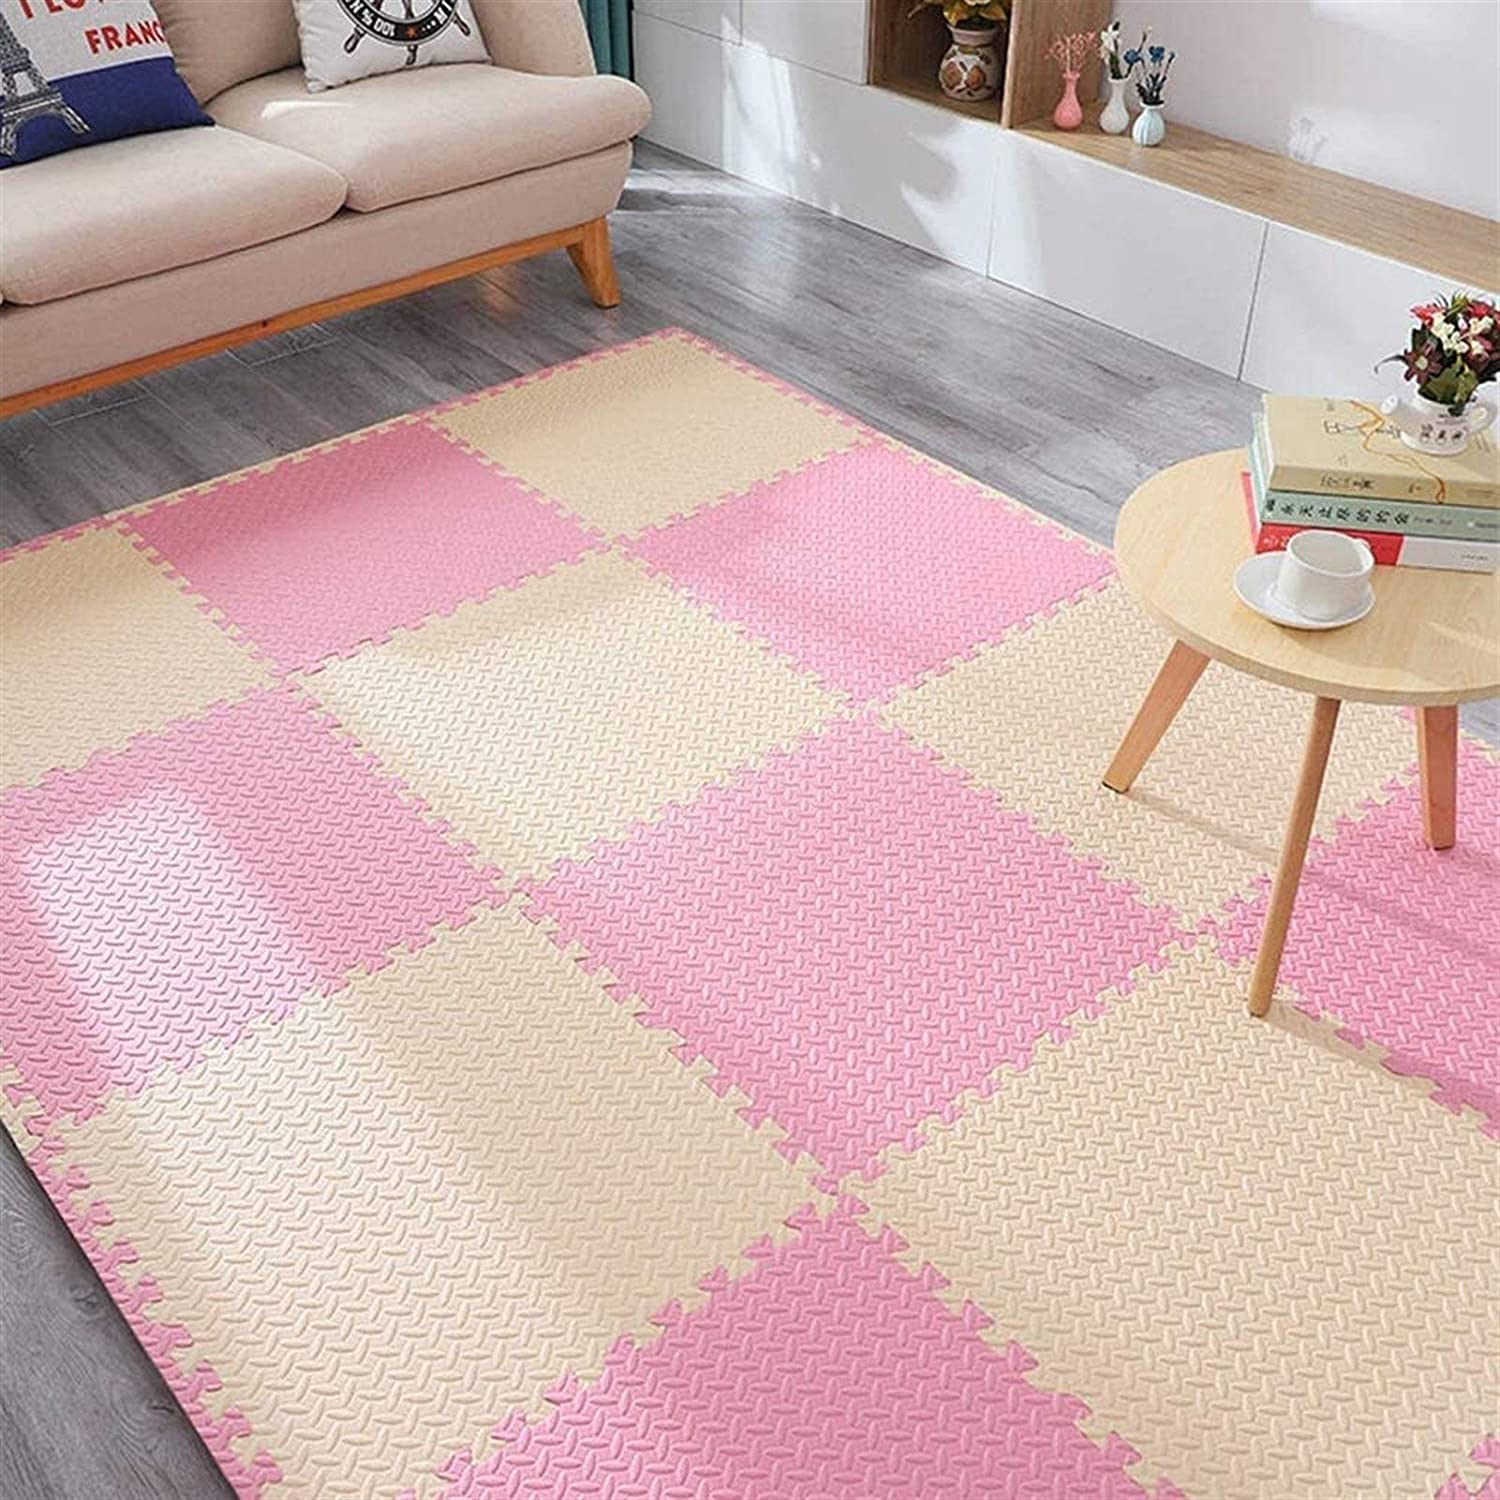 Puzzle Play Mats Versatile Foam Tough Beauty products And Offering Super special price Durable